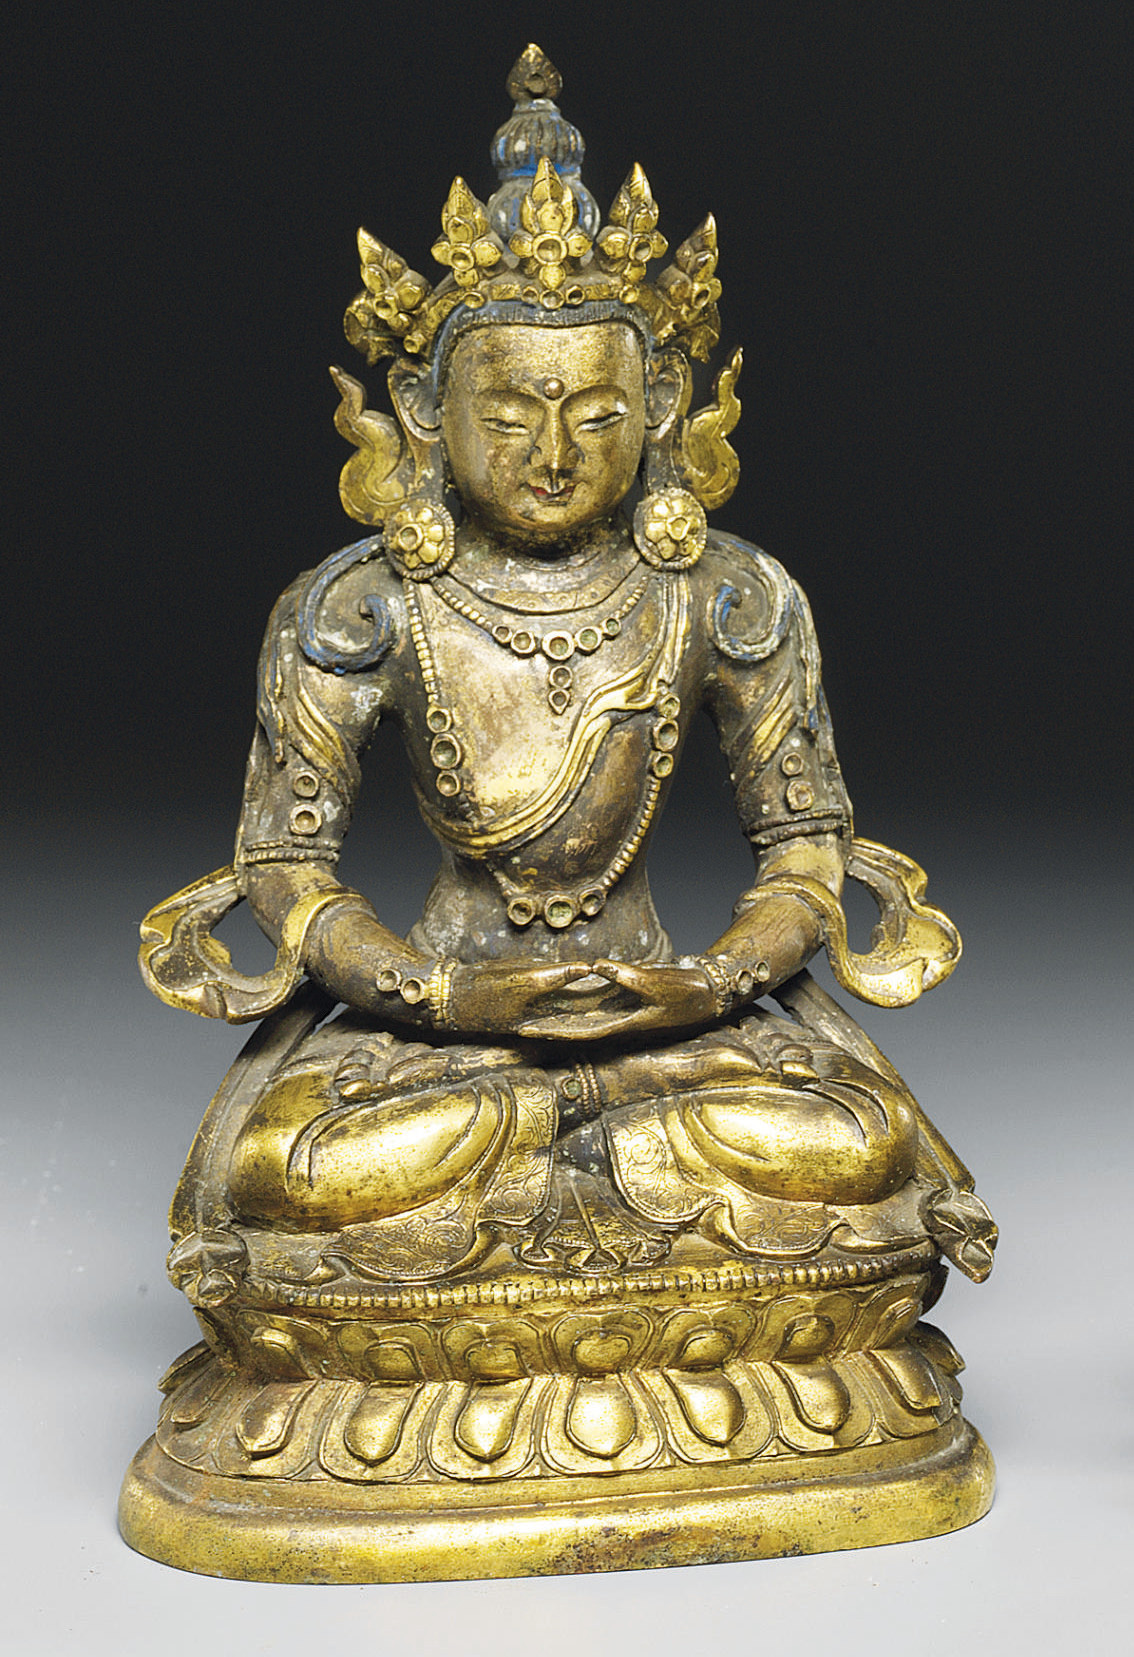 A GILT-BRONZE FIGURE OF A SEAT